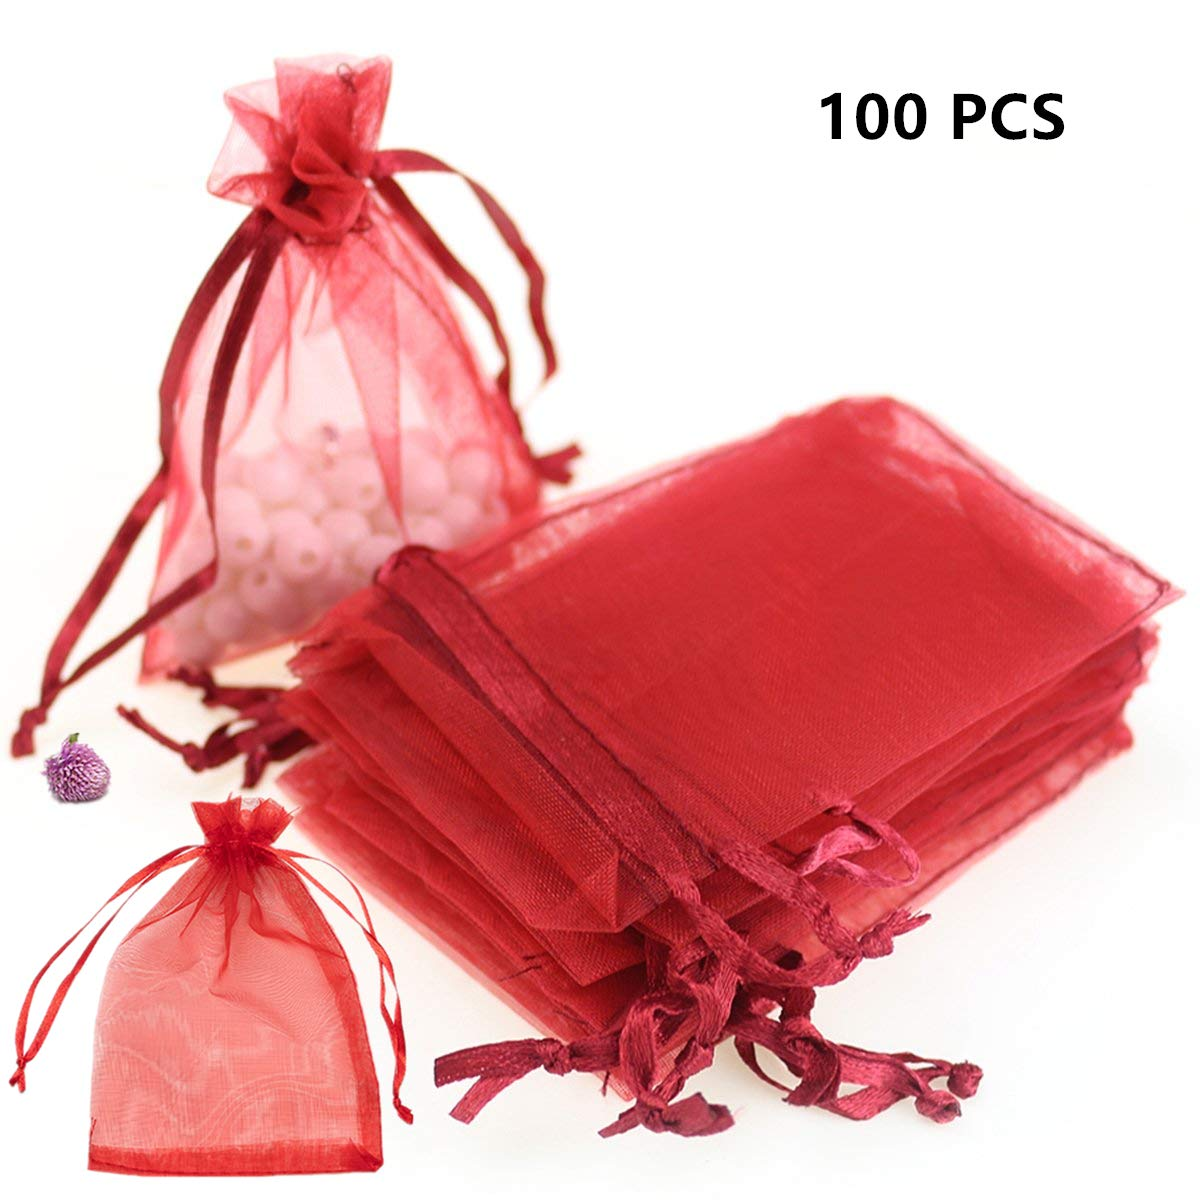 Hoomzia 100Pcs Organza Gift Pouches Wedding Party Christmas Favor Gift Bags Jewelry Pouches (8'' x 12''(100-PCS), Red) by Hoomzia